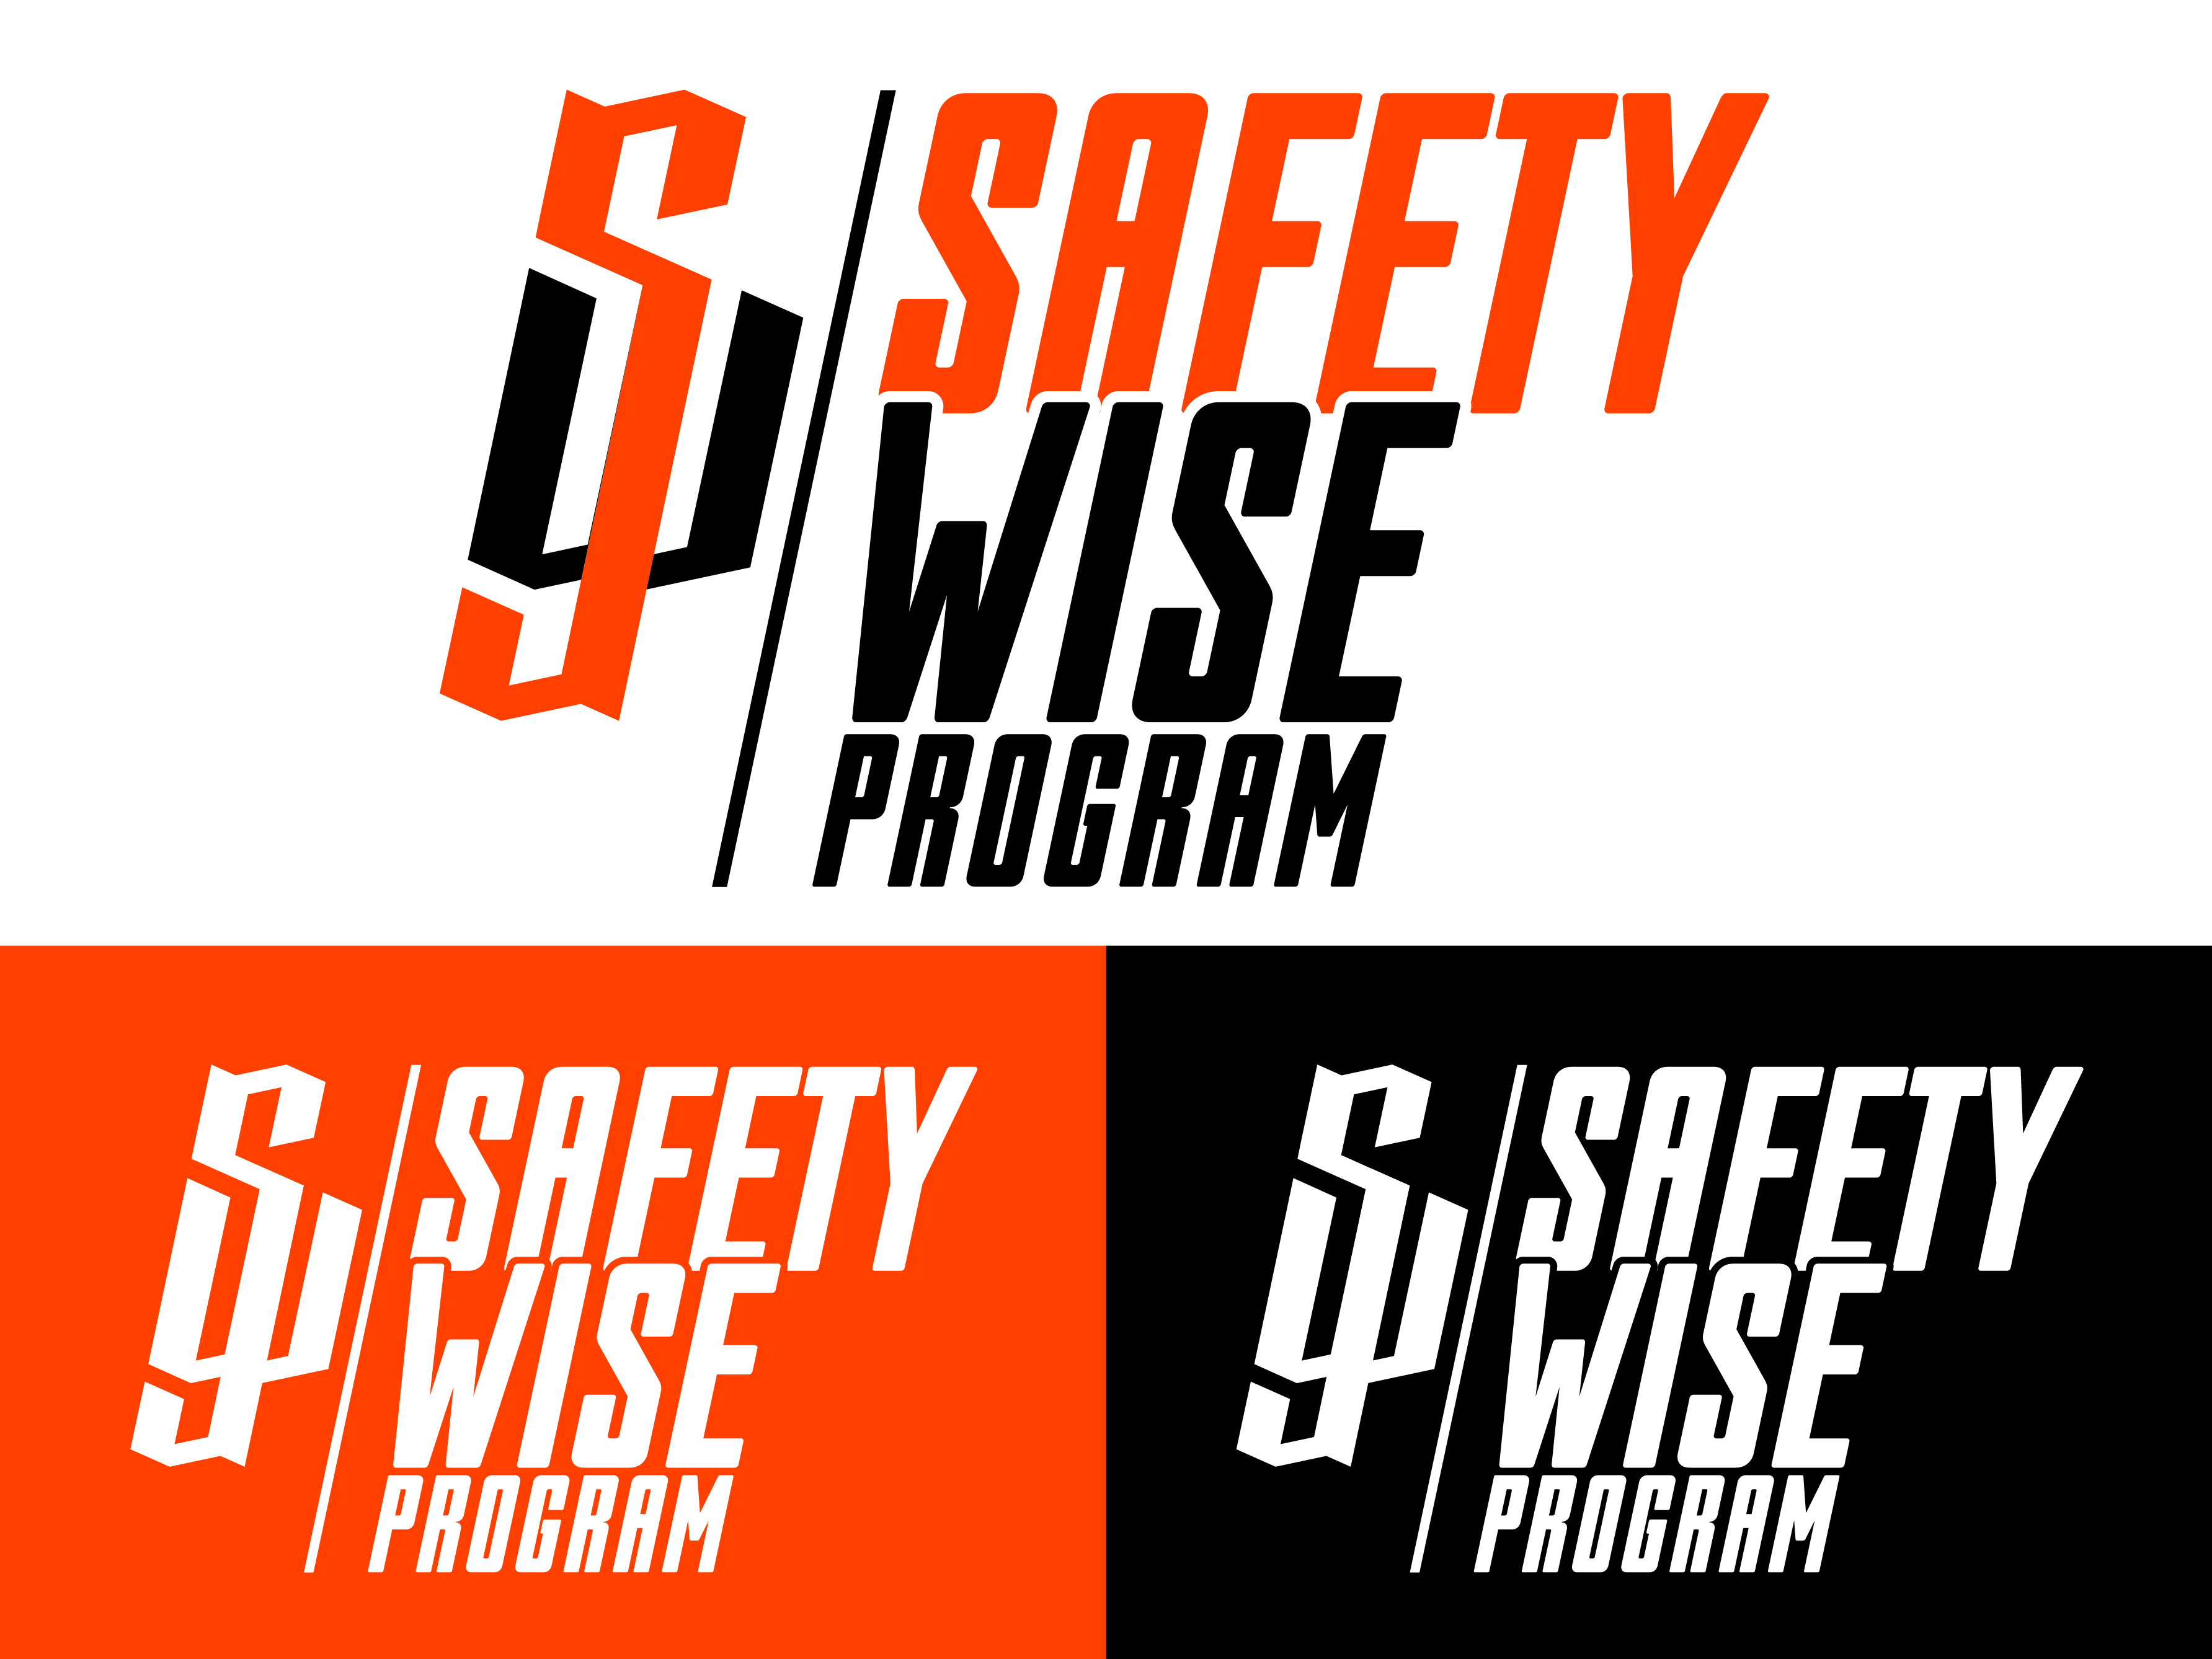 Logo Design by Rob King - Entry No. 41 in the Logo Design Contest New Logo Design for Safety Wise Program.